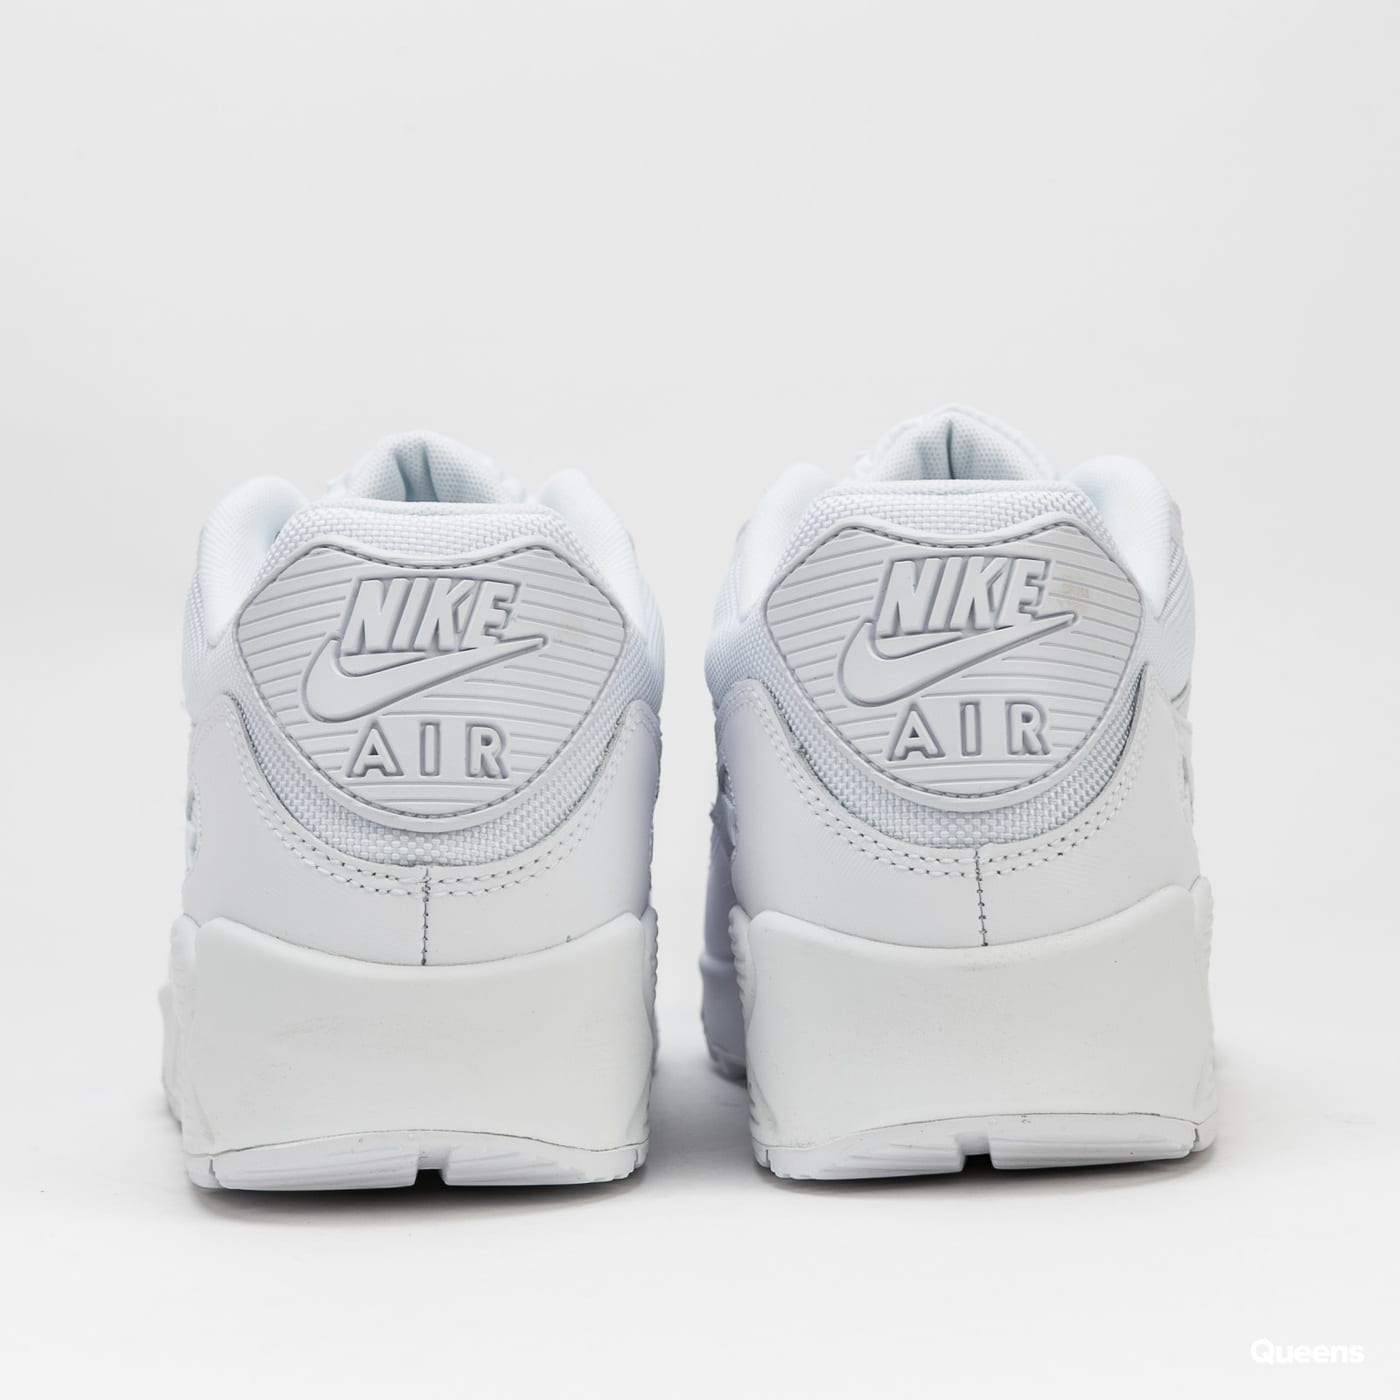 Nike Air Max 90 Essential white / white - white - white